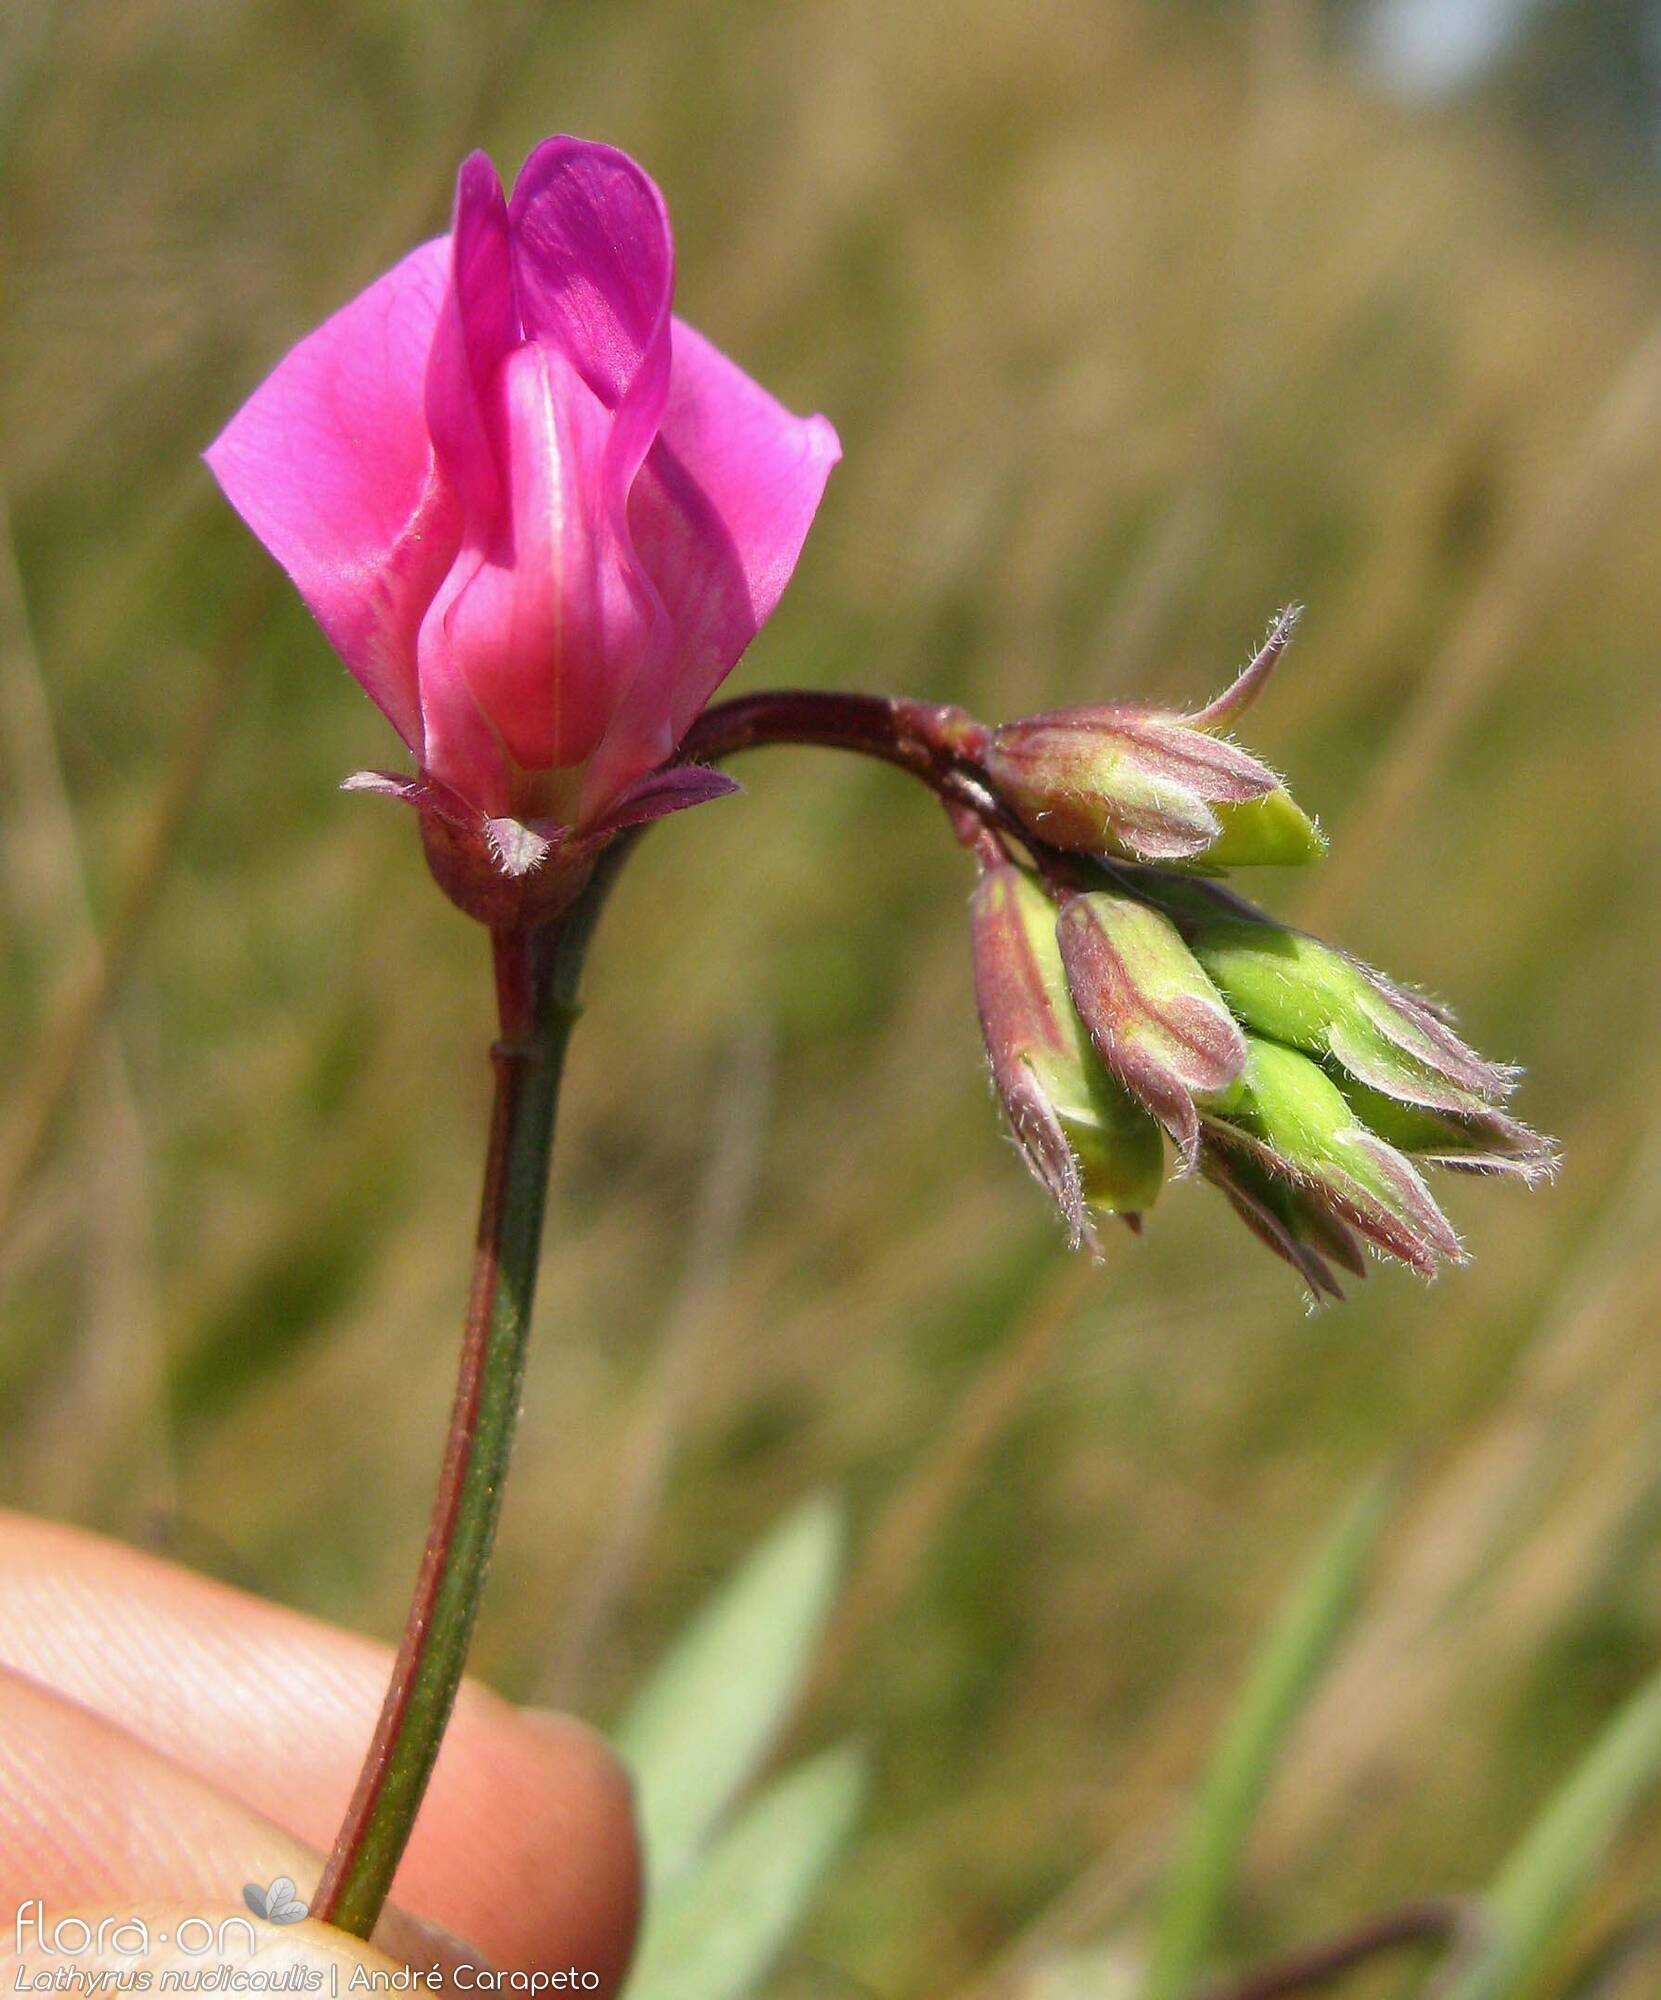 Lathyrus nudicaulis - Flor (close-up) | André Carapeto; CC BY-NC 4.0